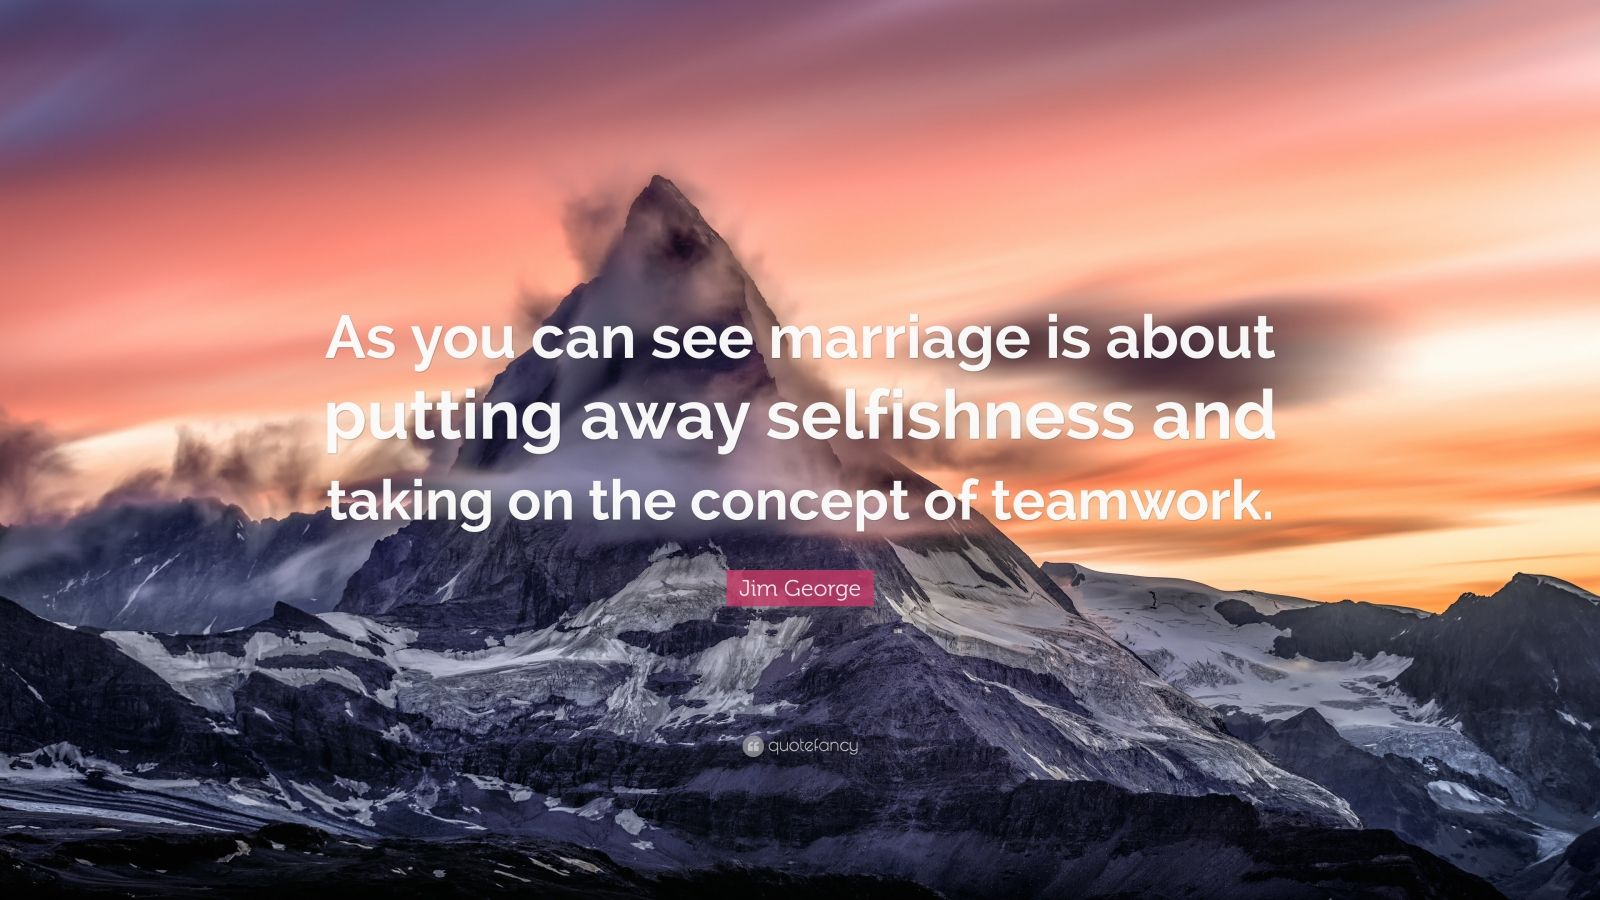 """Jim George Quote: """"As you can see marriage is about putting away selfishness and taking on the concept of teamwork."""""""